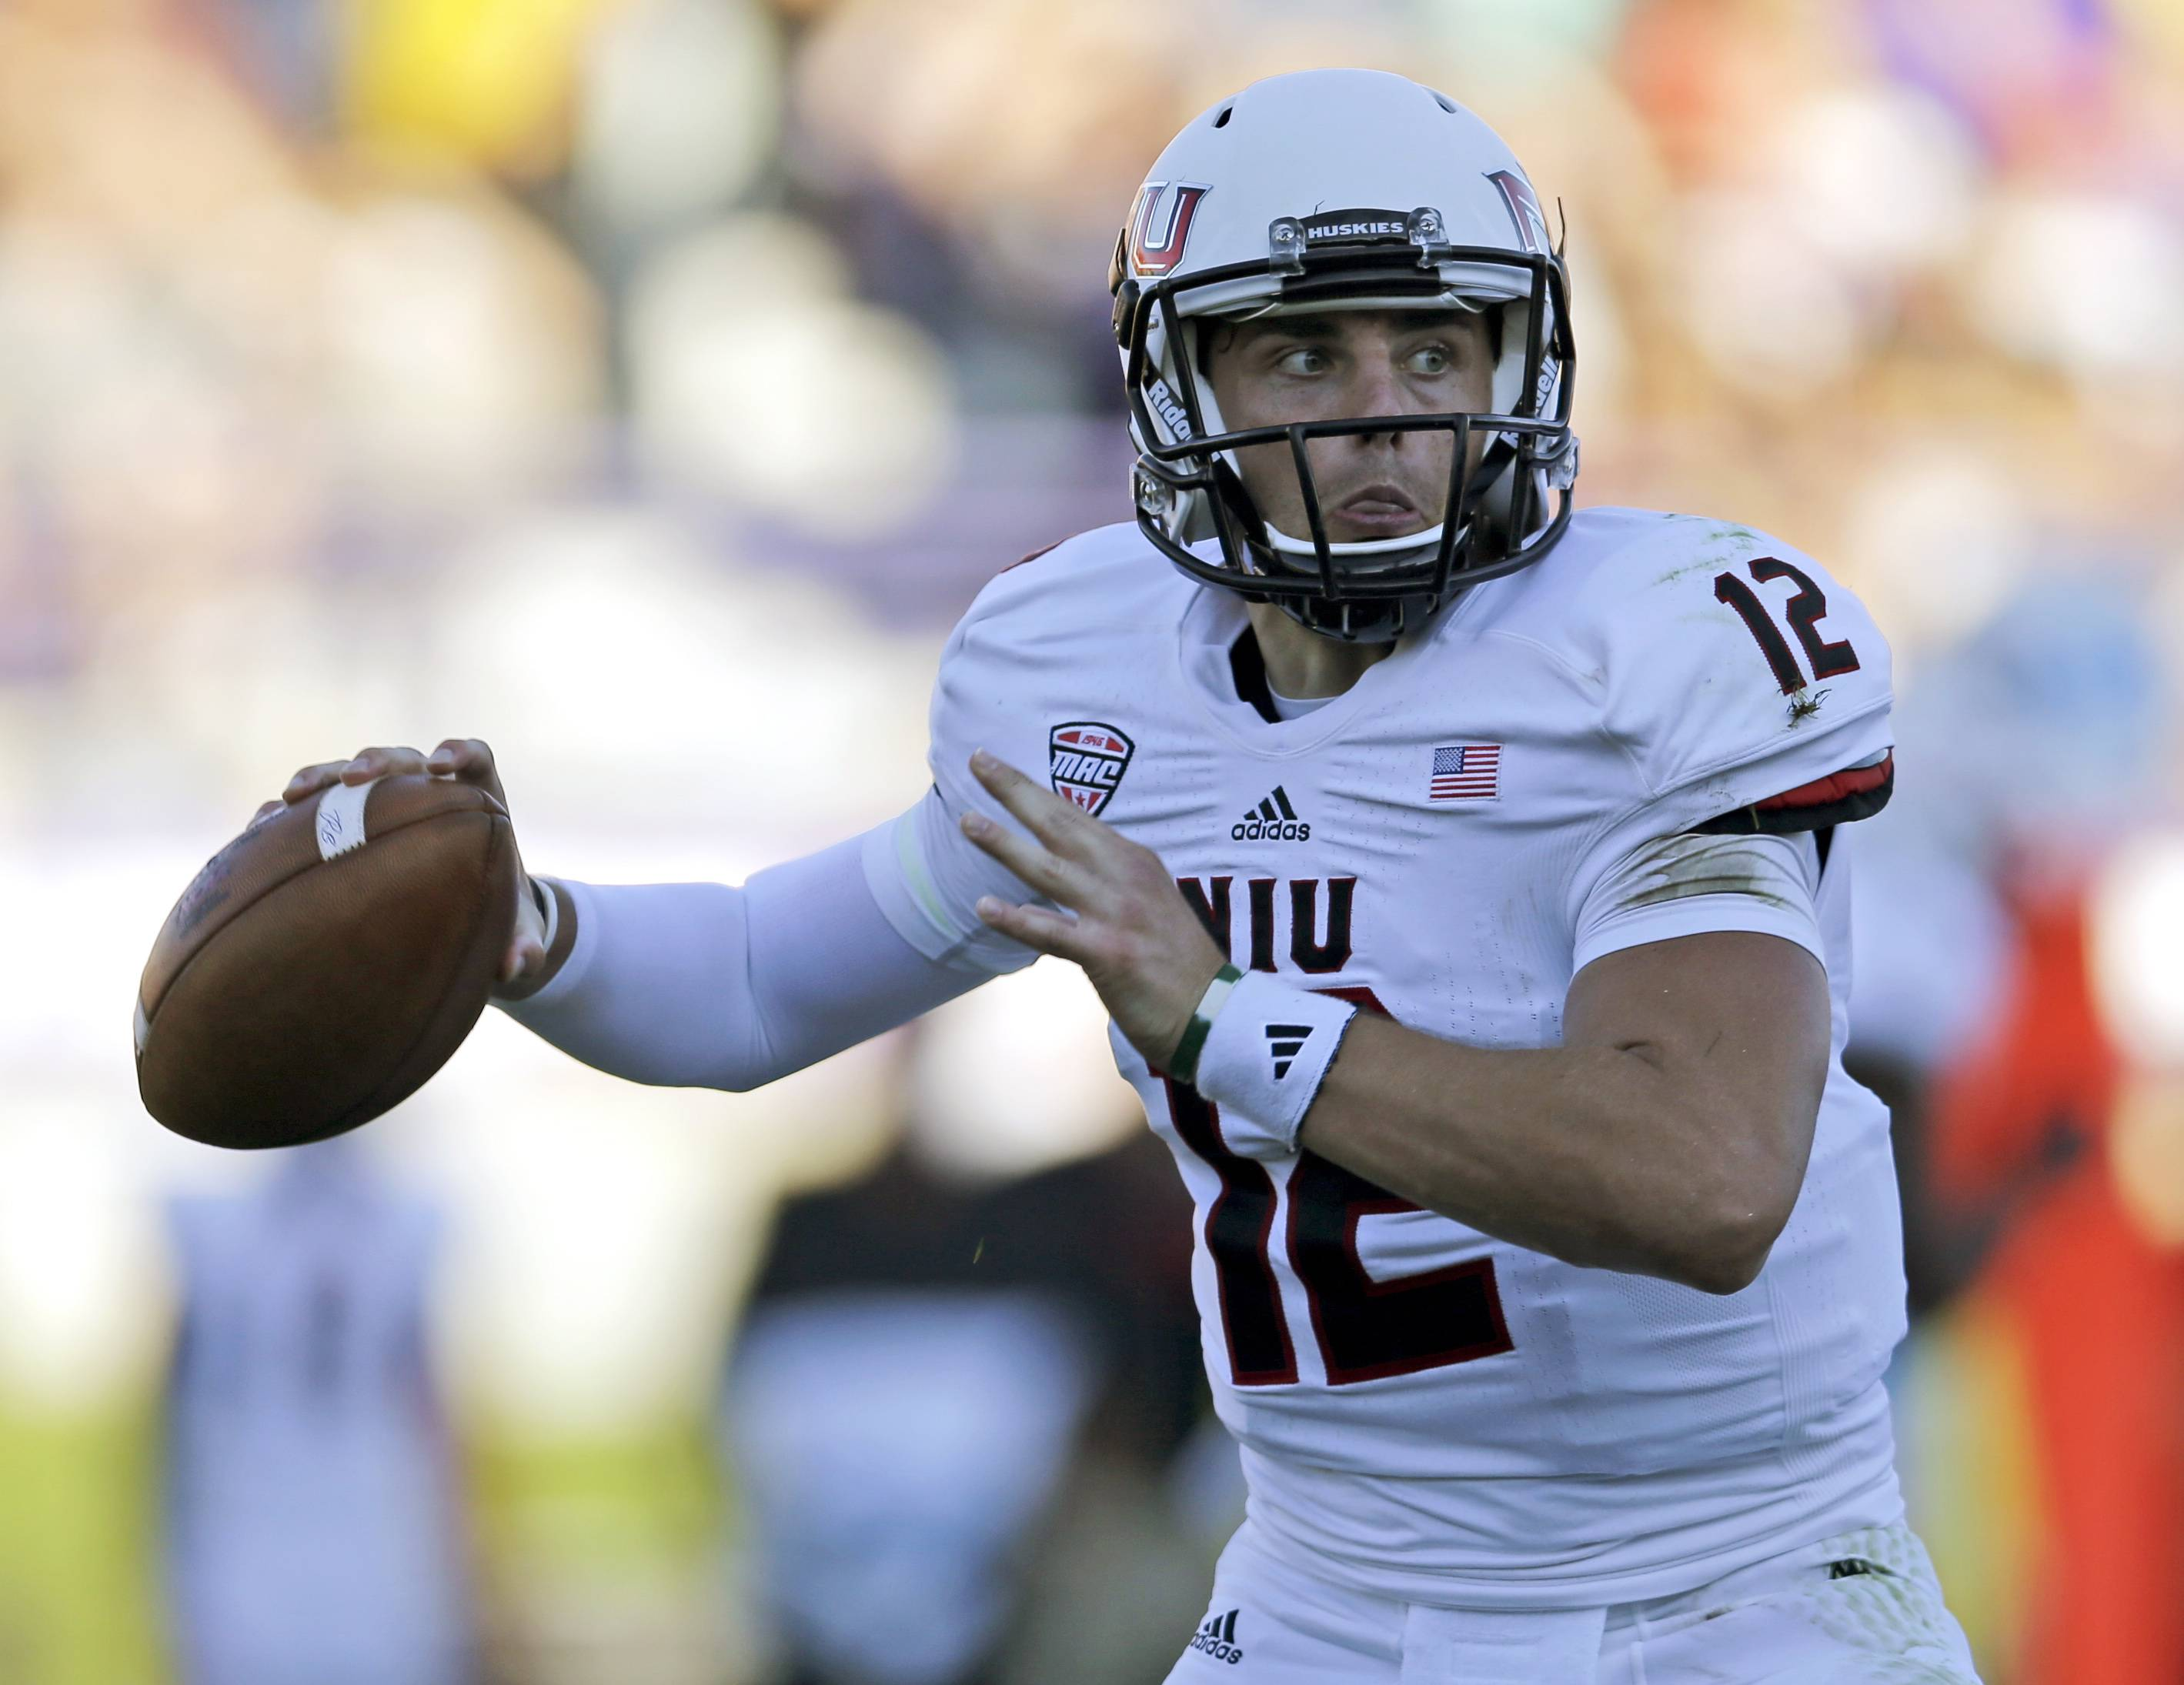 Drew Hare, one of three Northern Illinois quarterbacks, played the entire second half Saturday against Northwestern. He completed 6 of 10 passes for 90 yards and a pair of touchdowns.